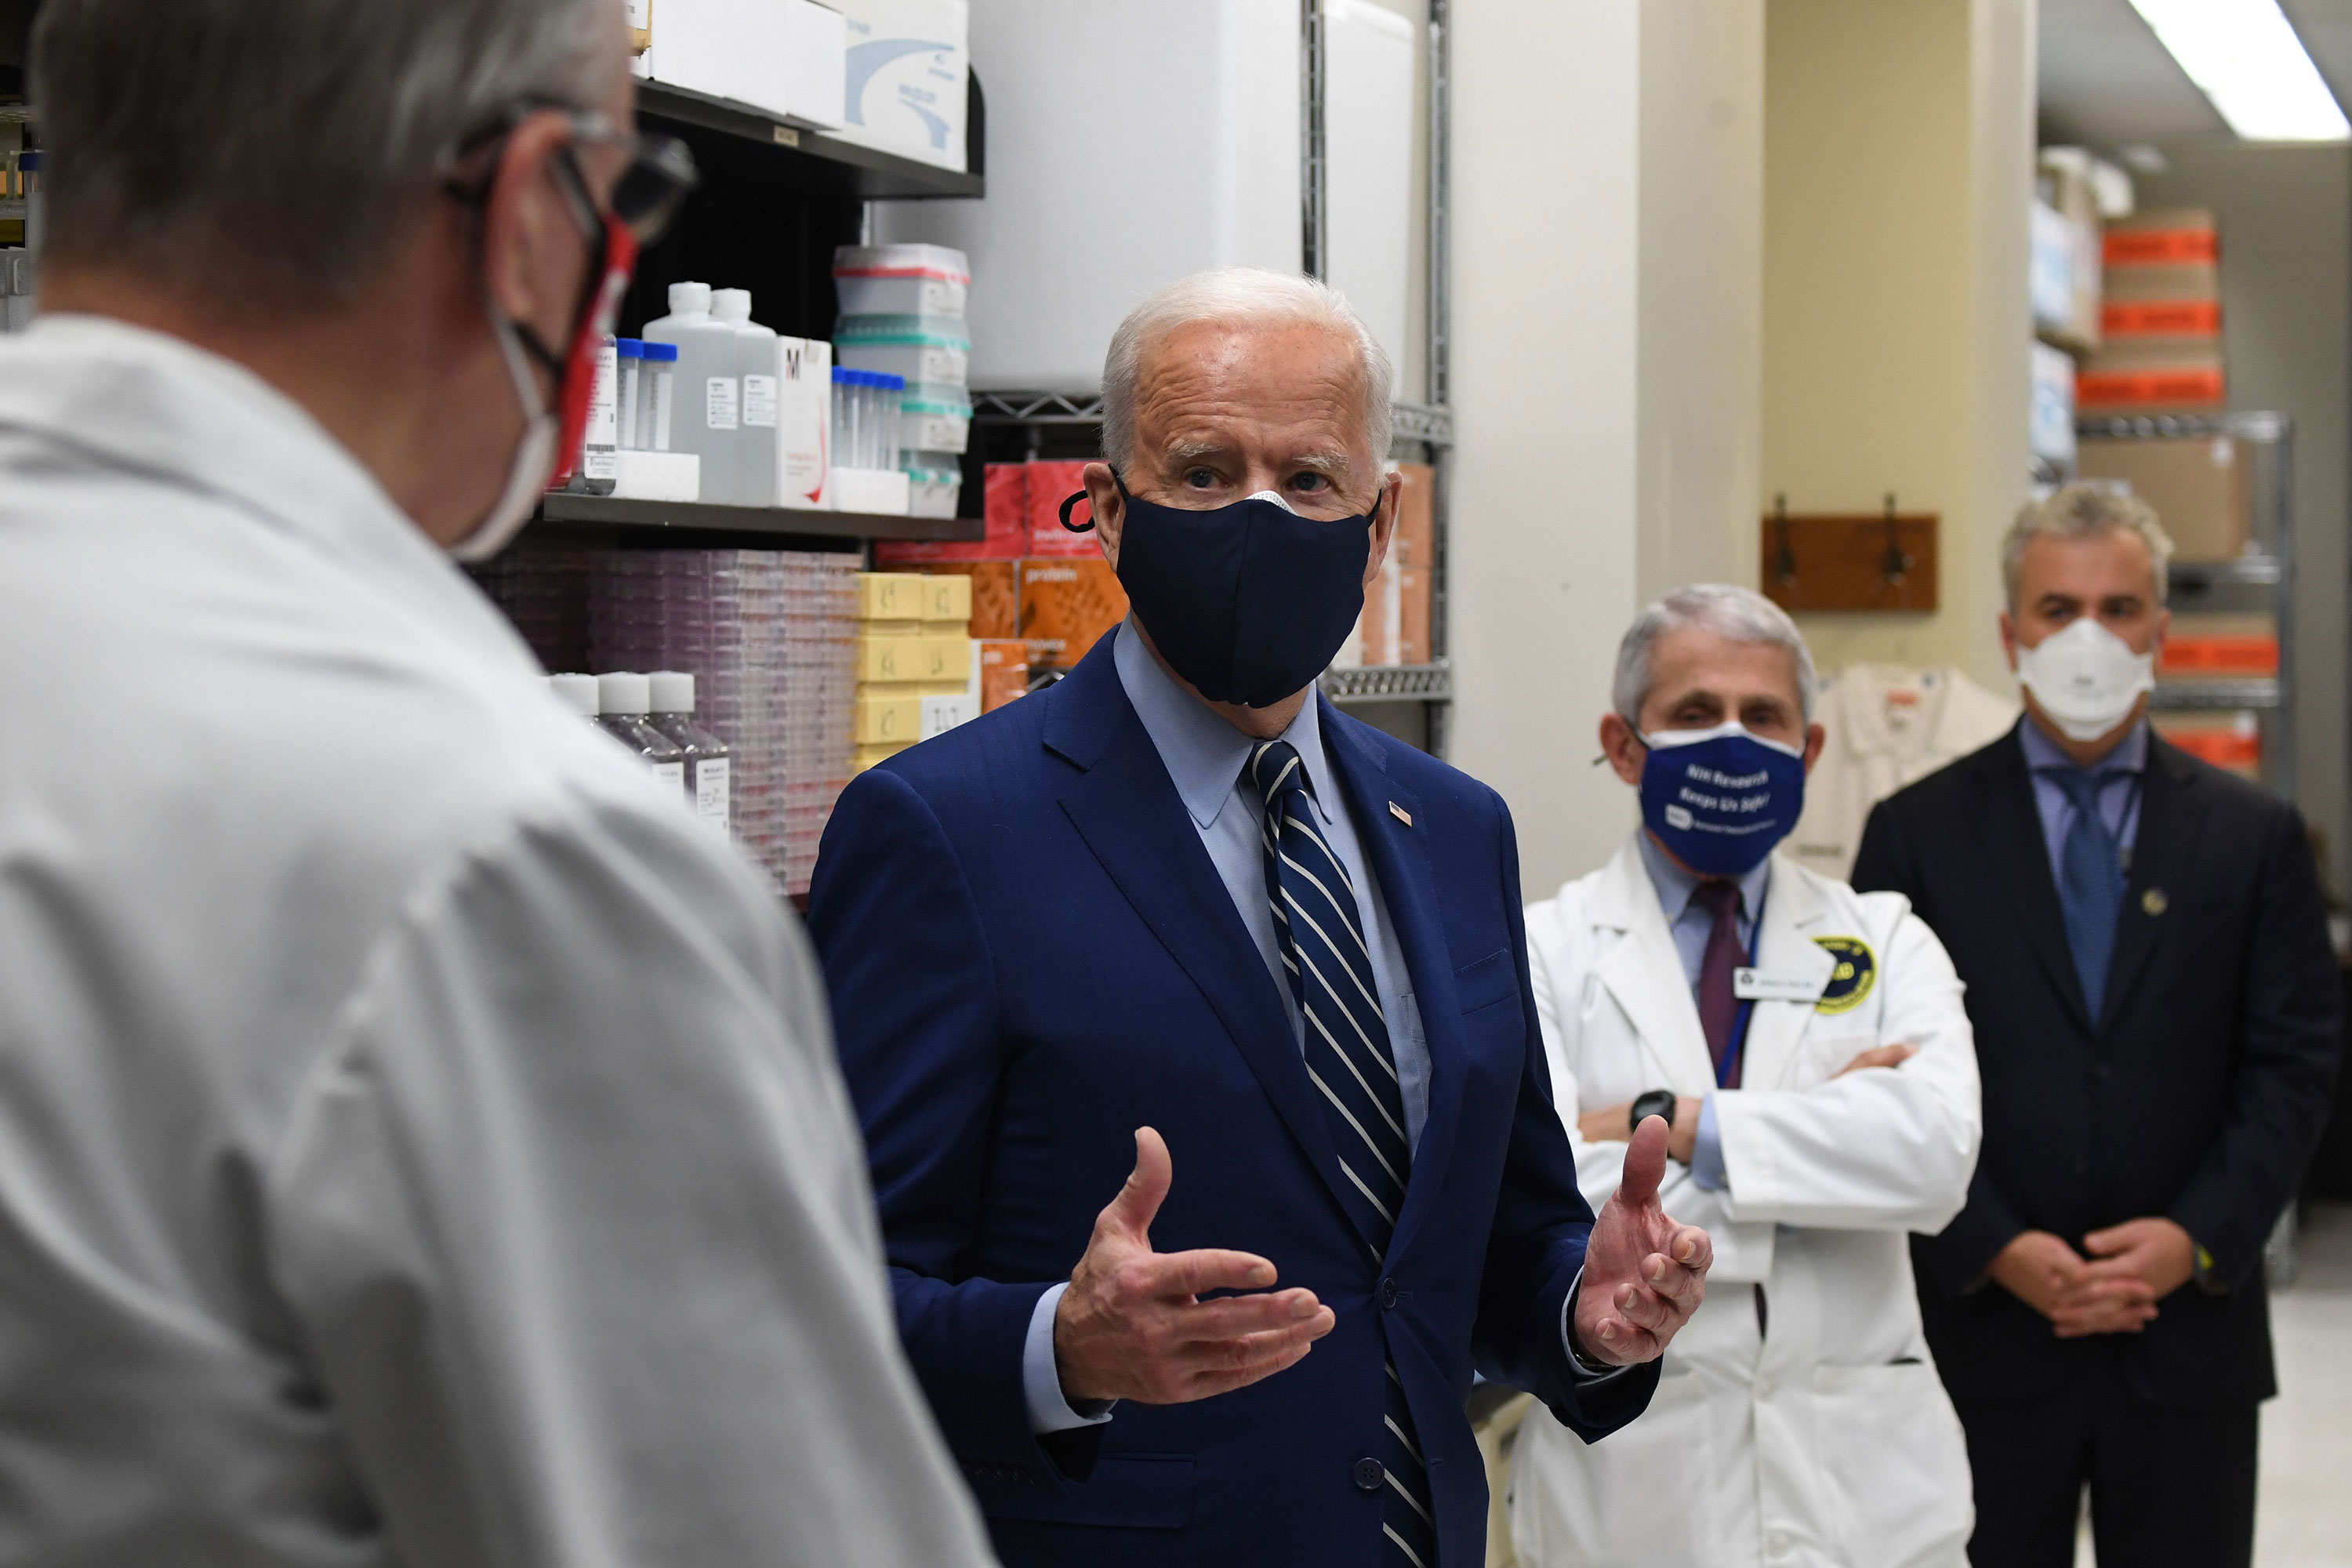 President Joe Biden speaks to Dr. Barney S. Graham, left), as Dr. Anthony Fauci listens during a tour of the Viral Pathogenesis Laboratory at the National Institutes of Health in Bethesda, Maryland, on February 11.